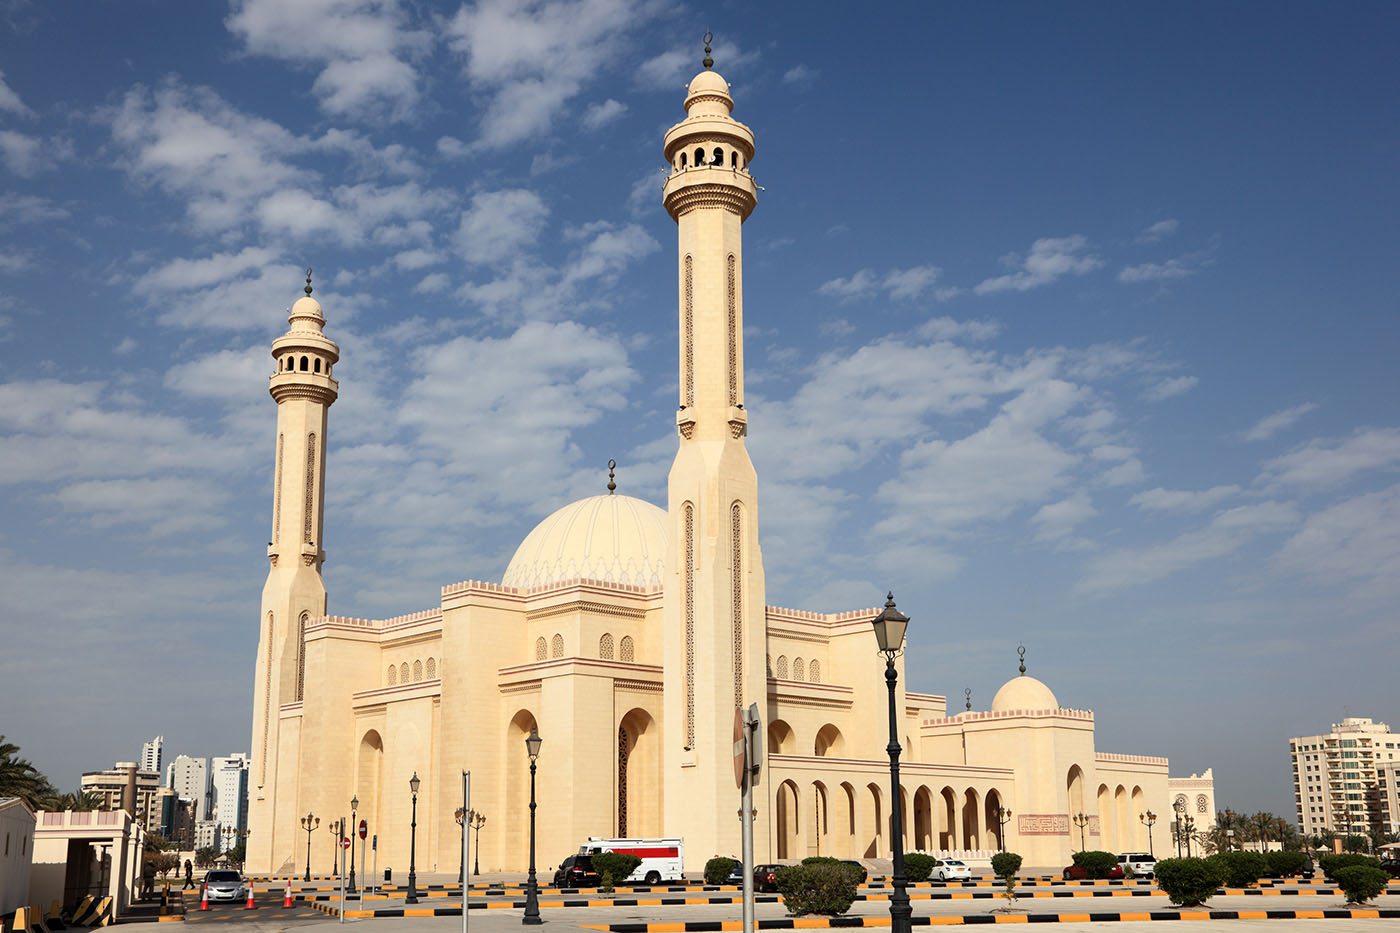 Al Fatih Mosque Manama, Points of Interest in Bahrain for Tourists, Locals and Everyone